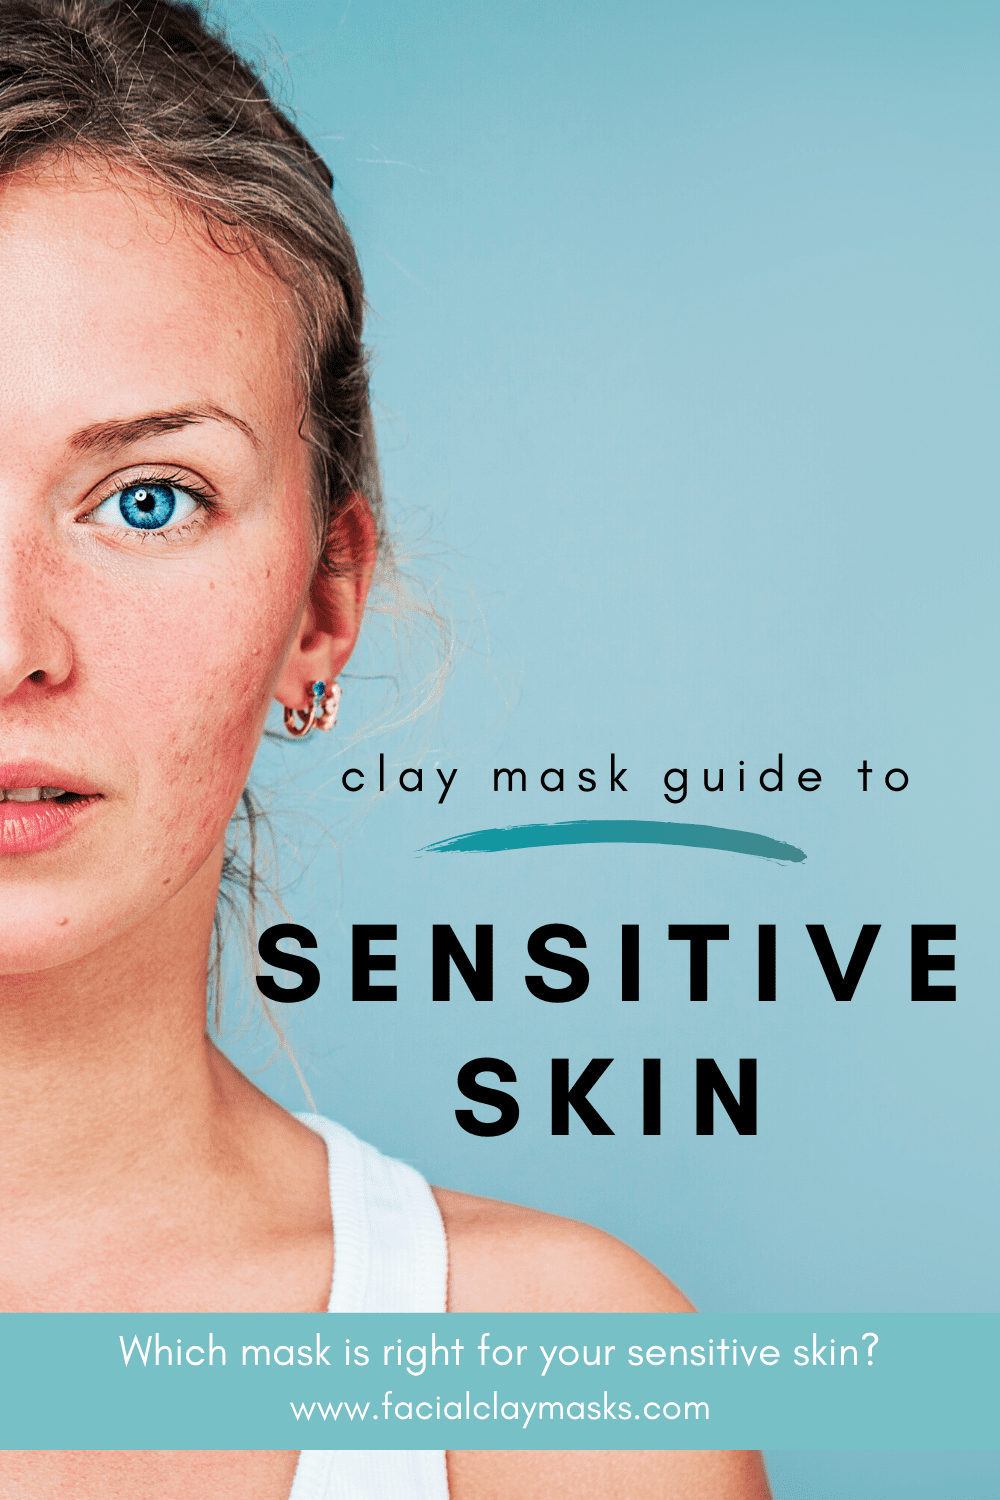 Are Clay Masks good for Sensitive Skin? 1